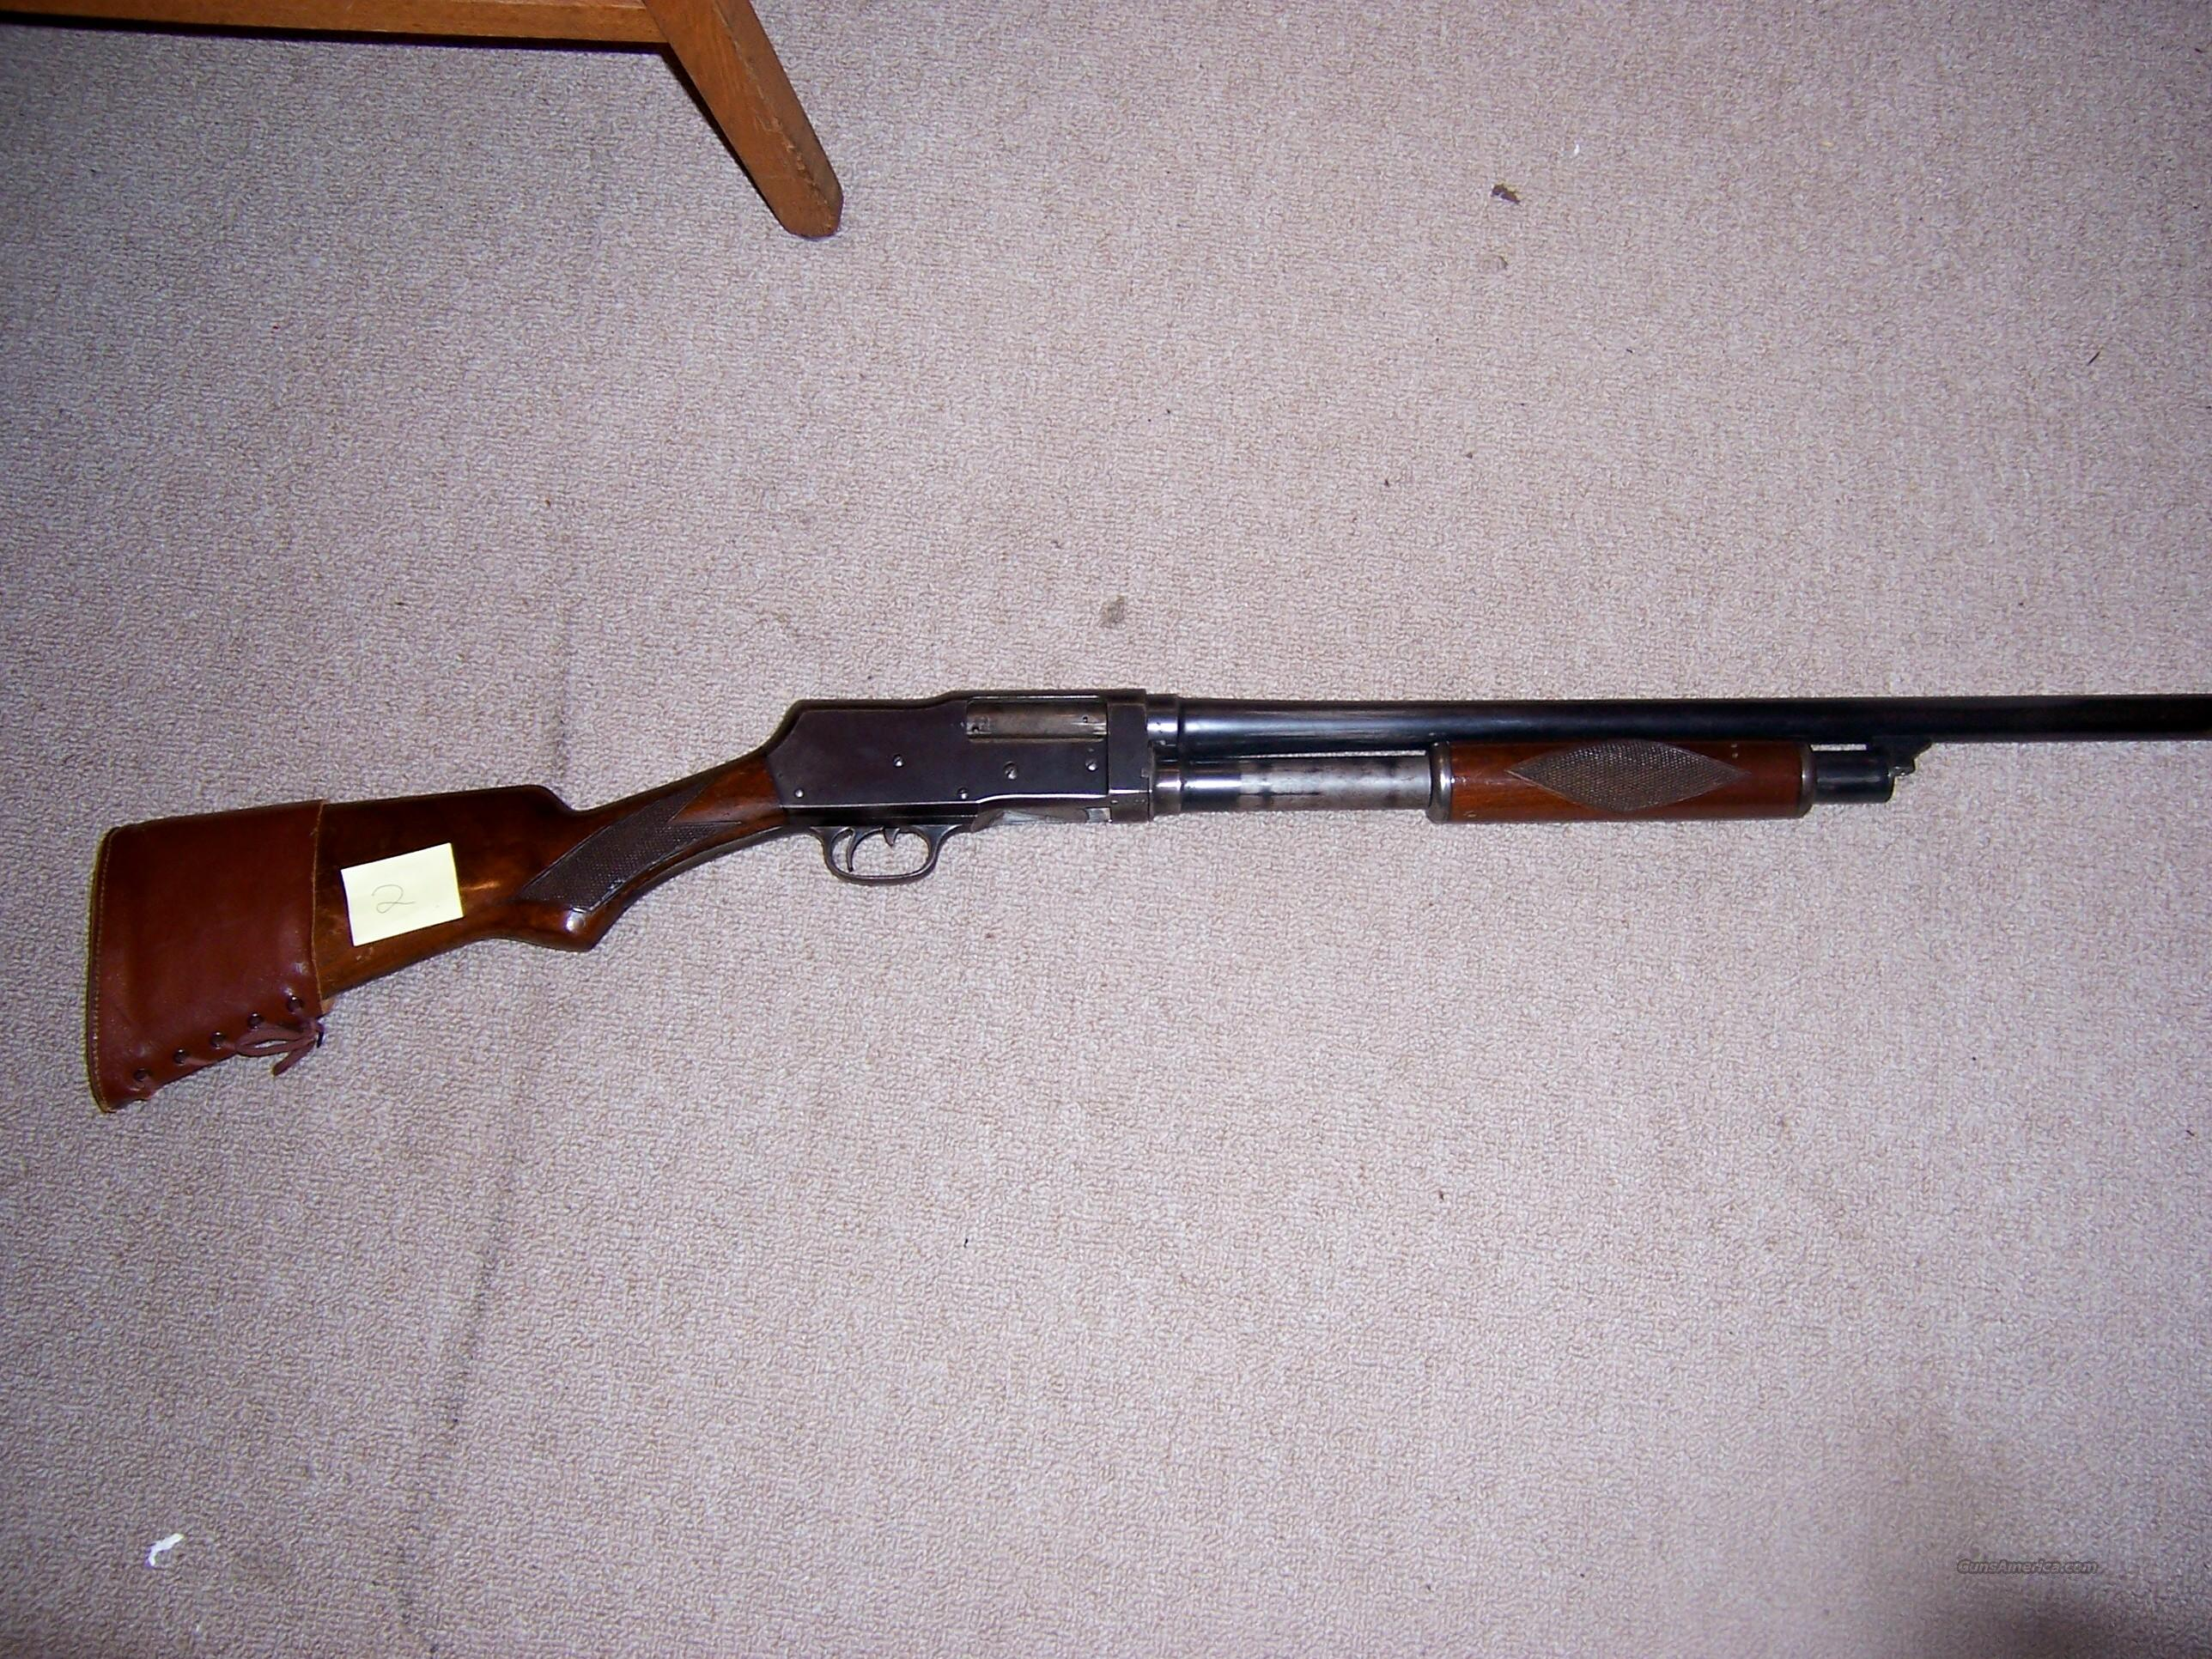 STEVENS  MODEL 520 12GA. PUMP  Guns > Shotguns > Stevens Shotguns